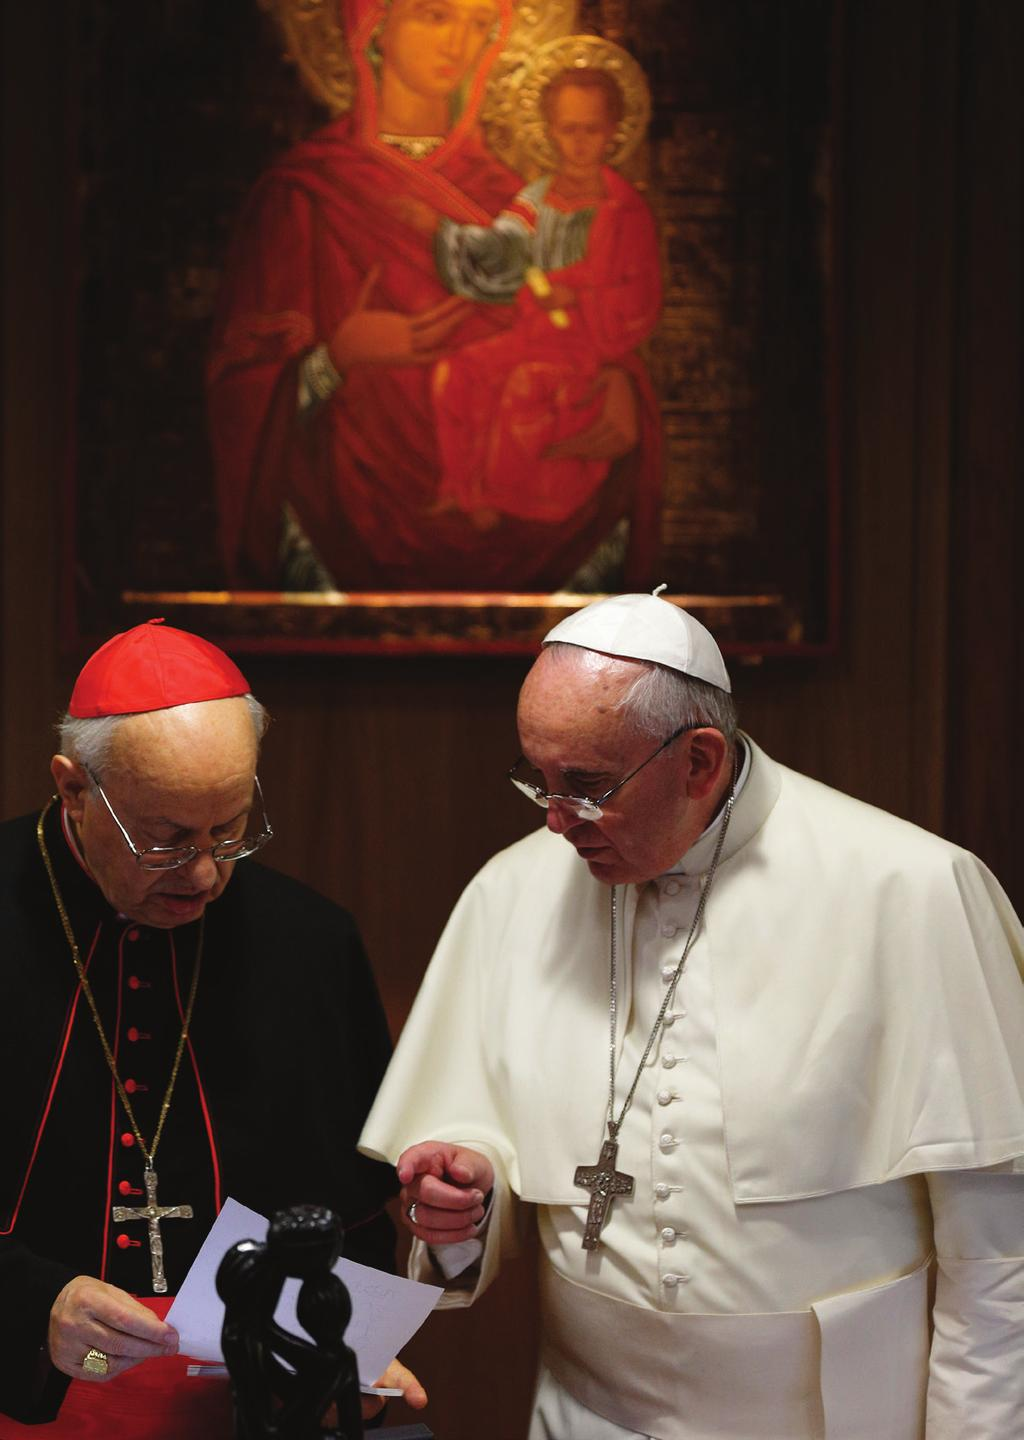 CHAPTER THREE REFLECTIONS ON AMORIS LAETITIA Chapter Three The Consensus Among the Bishops Expressed by Amoris Laetitia One of the many aspects of the apostolic exhortation, Amoris Laetitia, that is